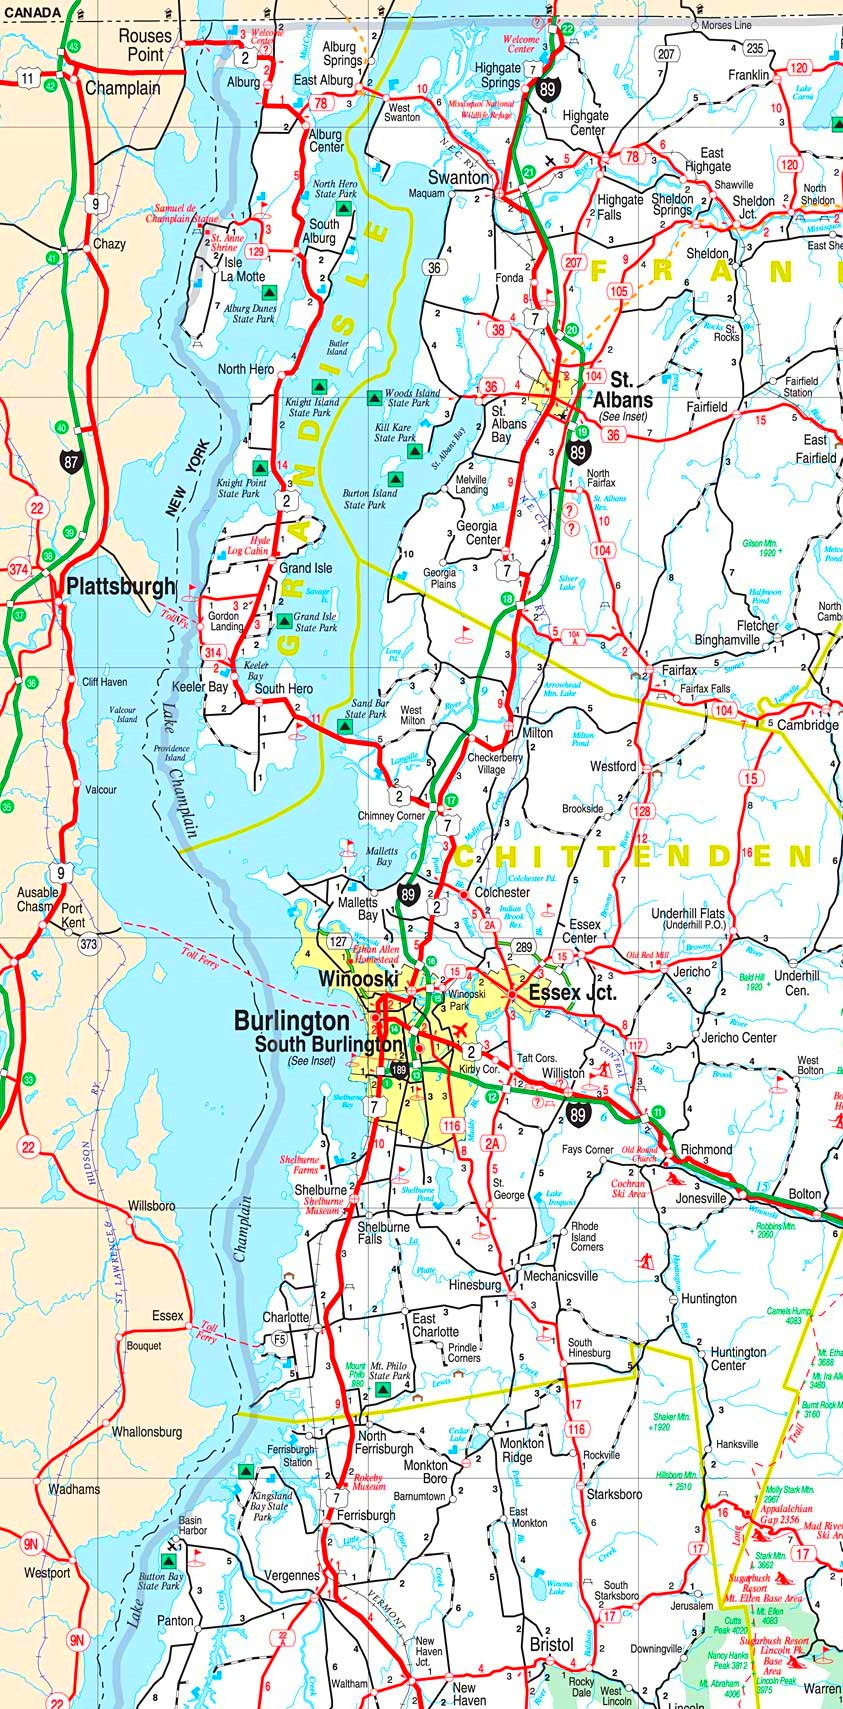 lake champlain on map Lake Champlain Road Map lake champlain on map